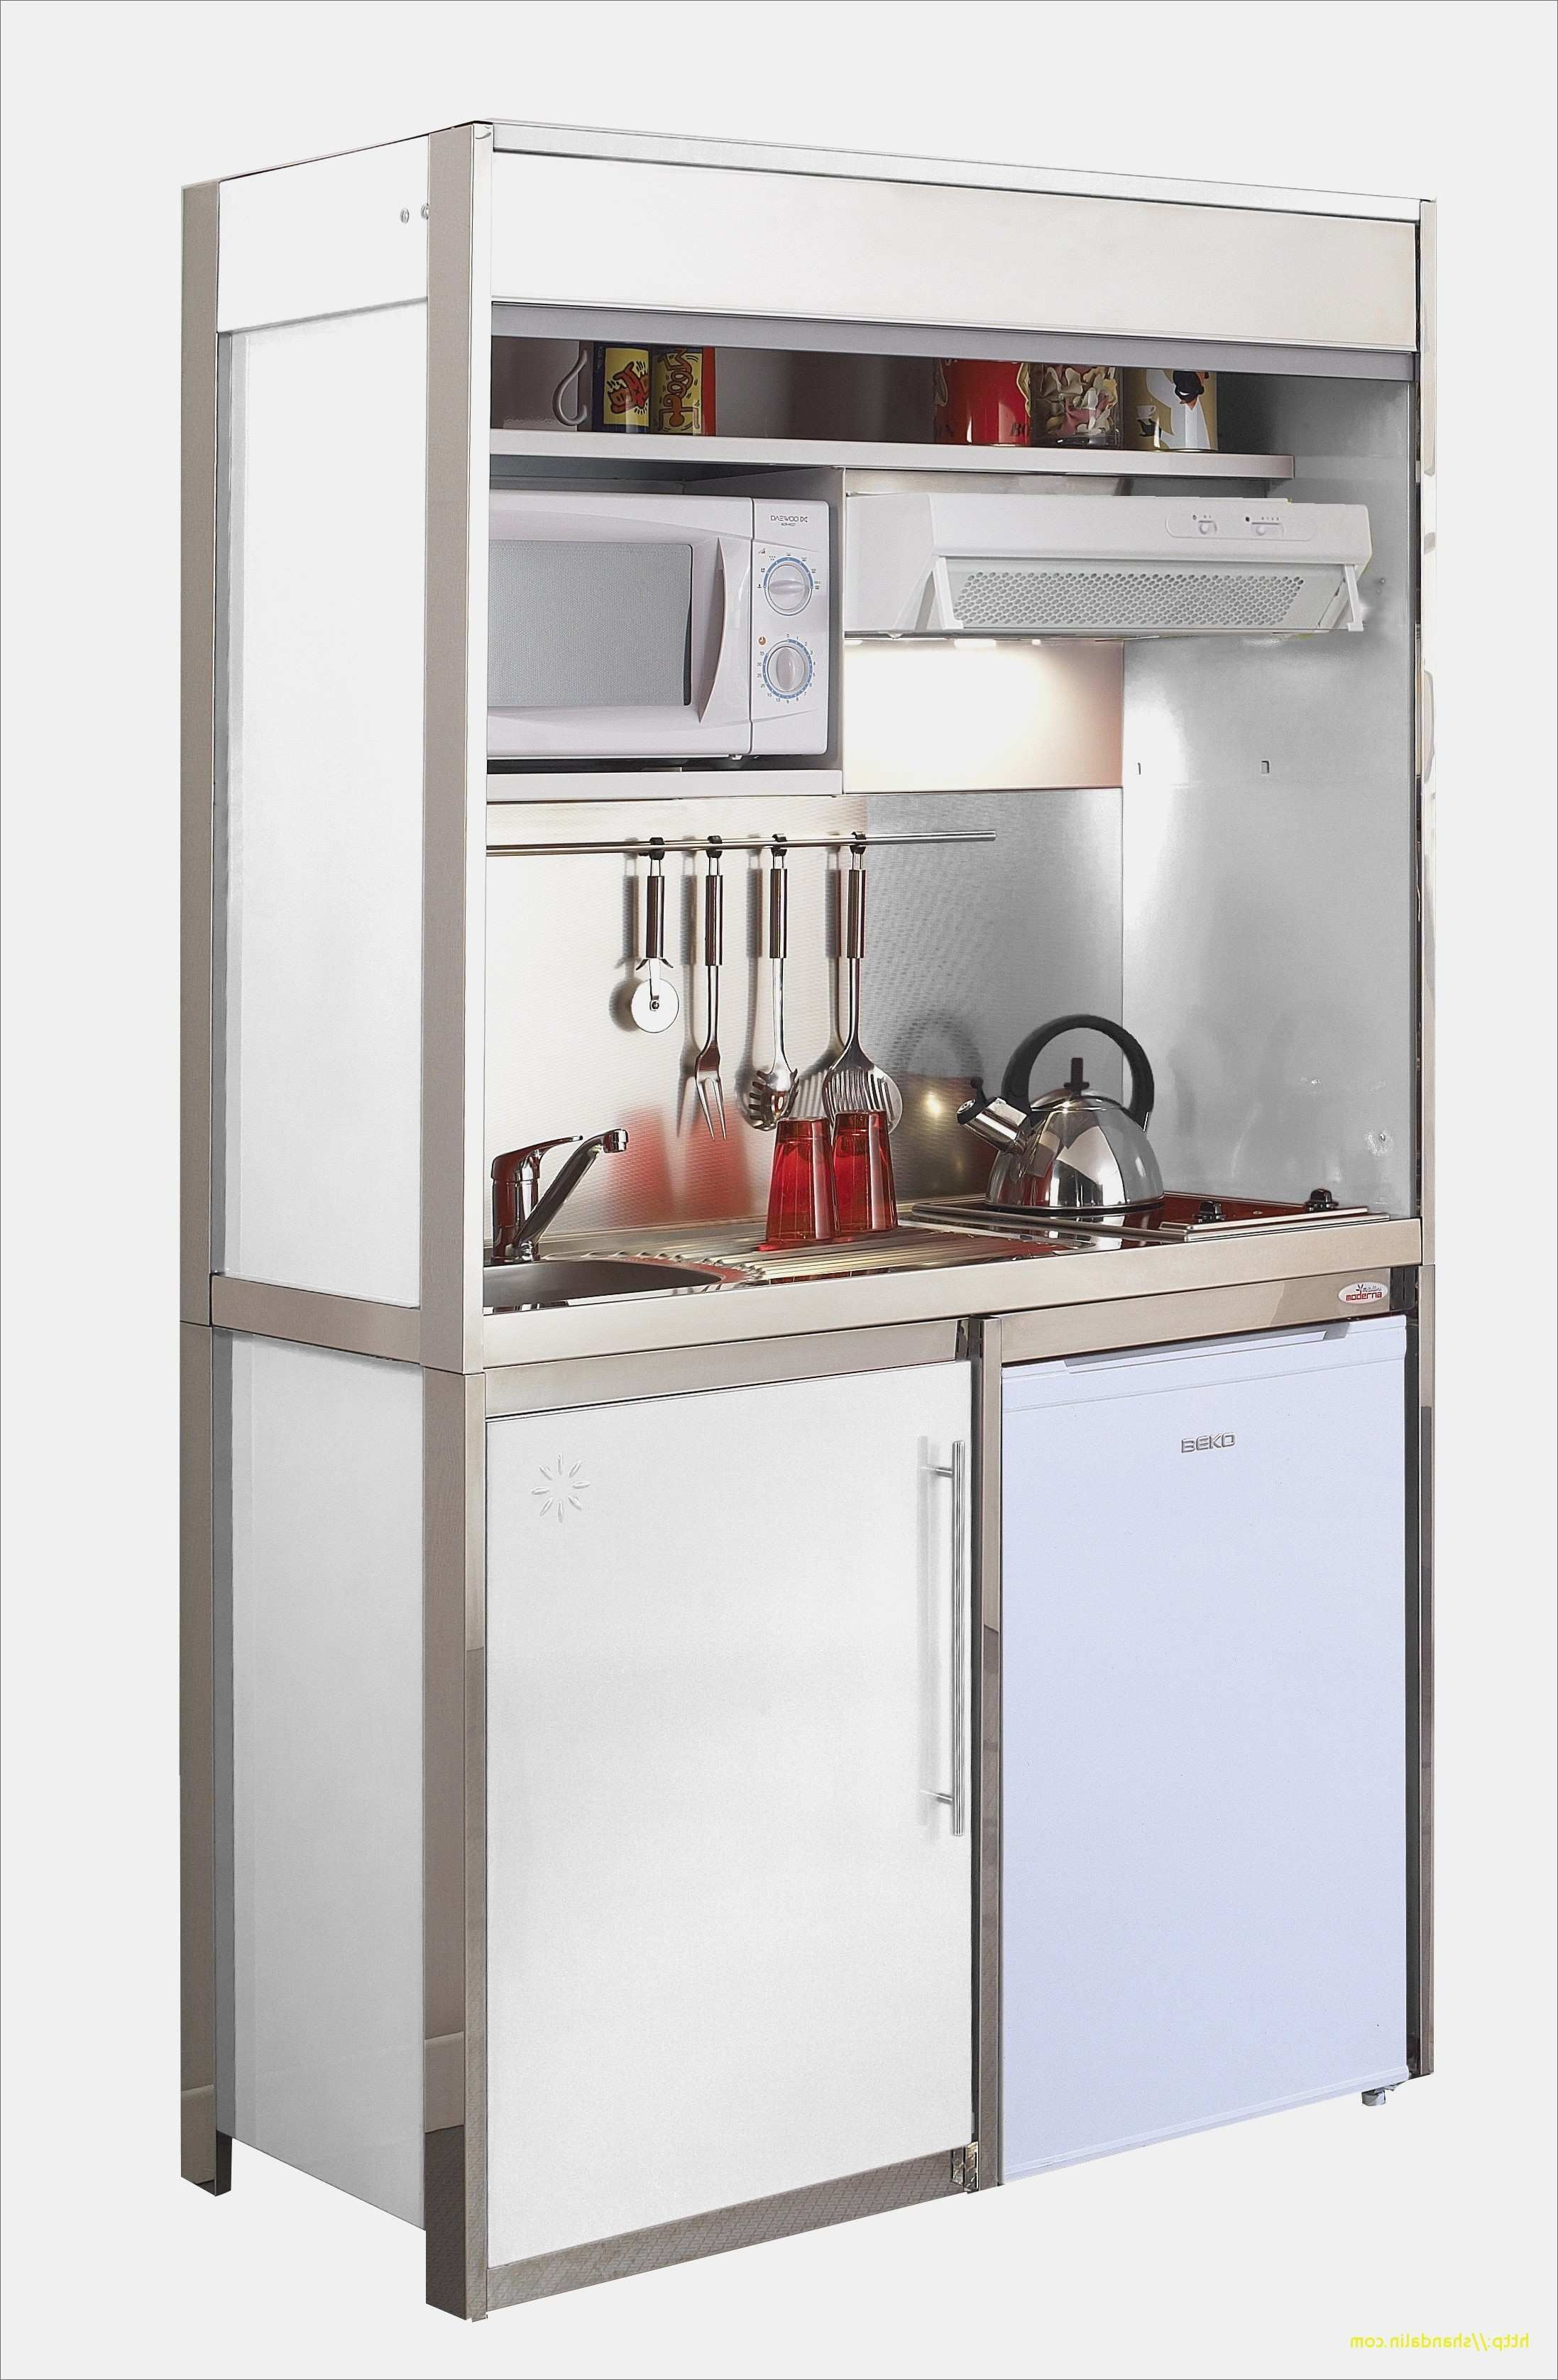 Nussbaum Regal Ikea Kitchenette Pour Studio Ikea Belle Avec Kitchenettes In